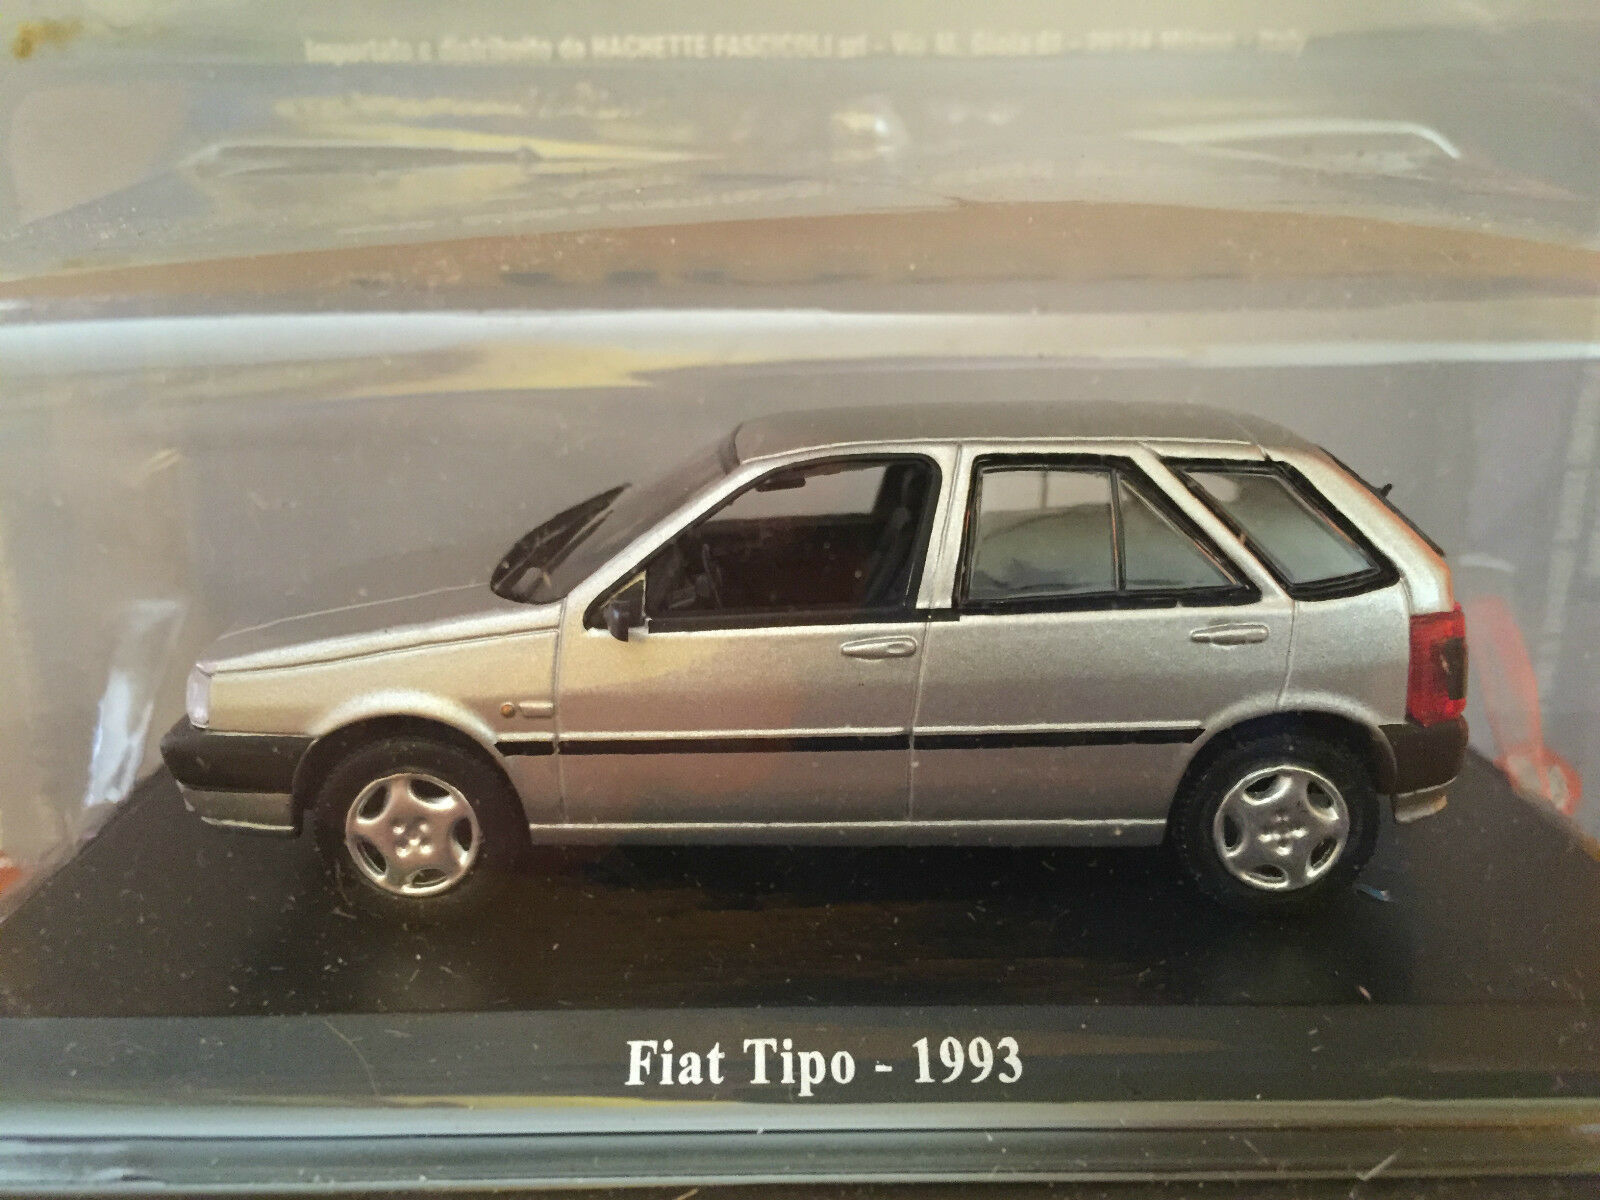 DIE CAST   FIAT TIPO - 1993    + TECA RIGIDA BOX 2 SCALA 1 43